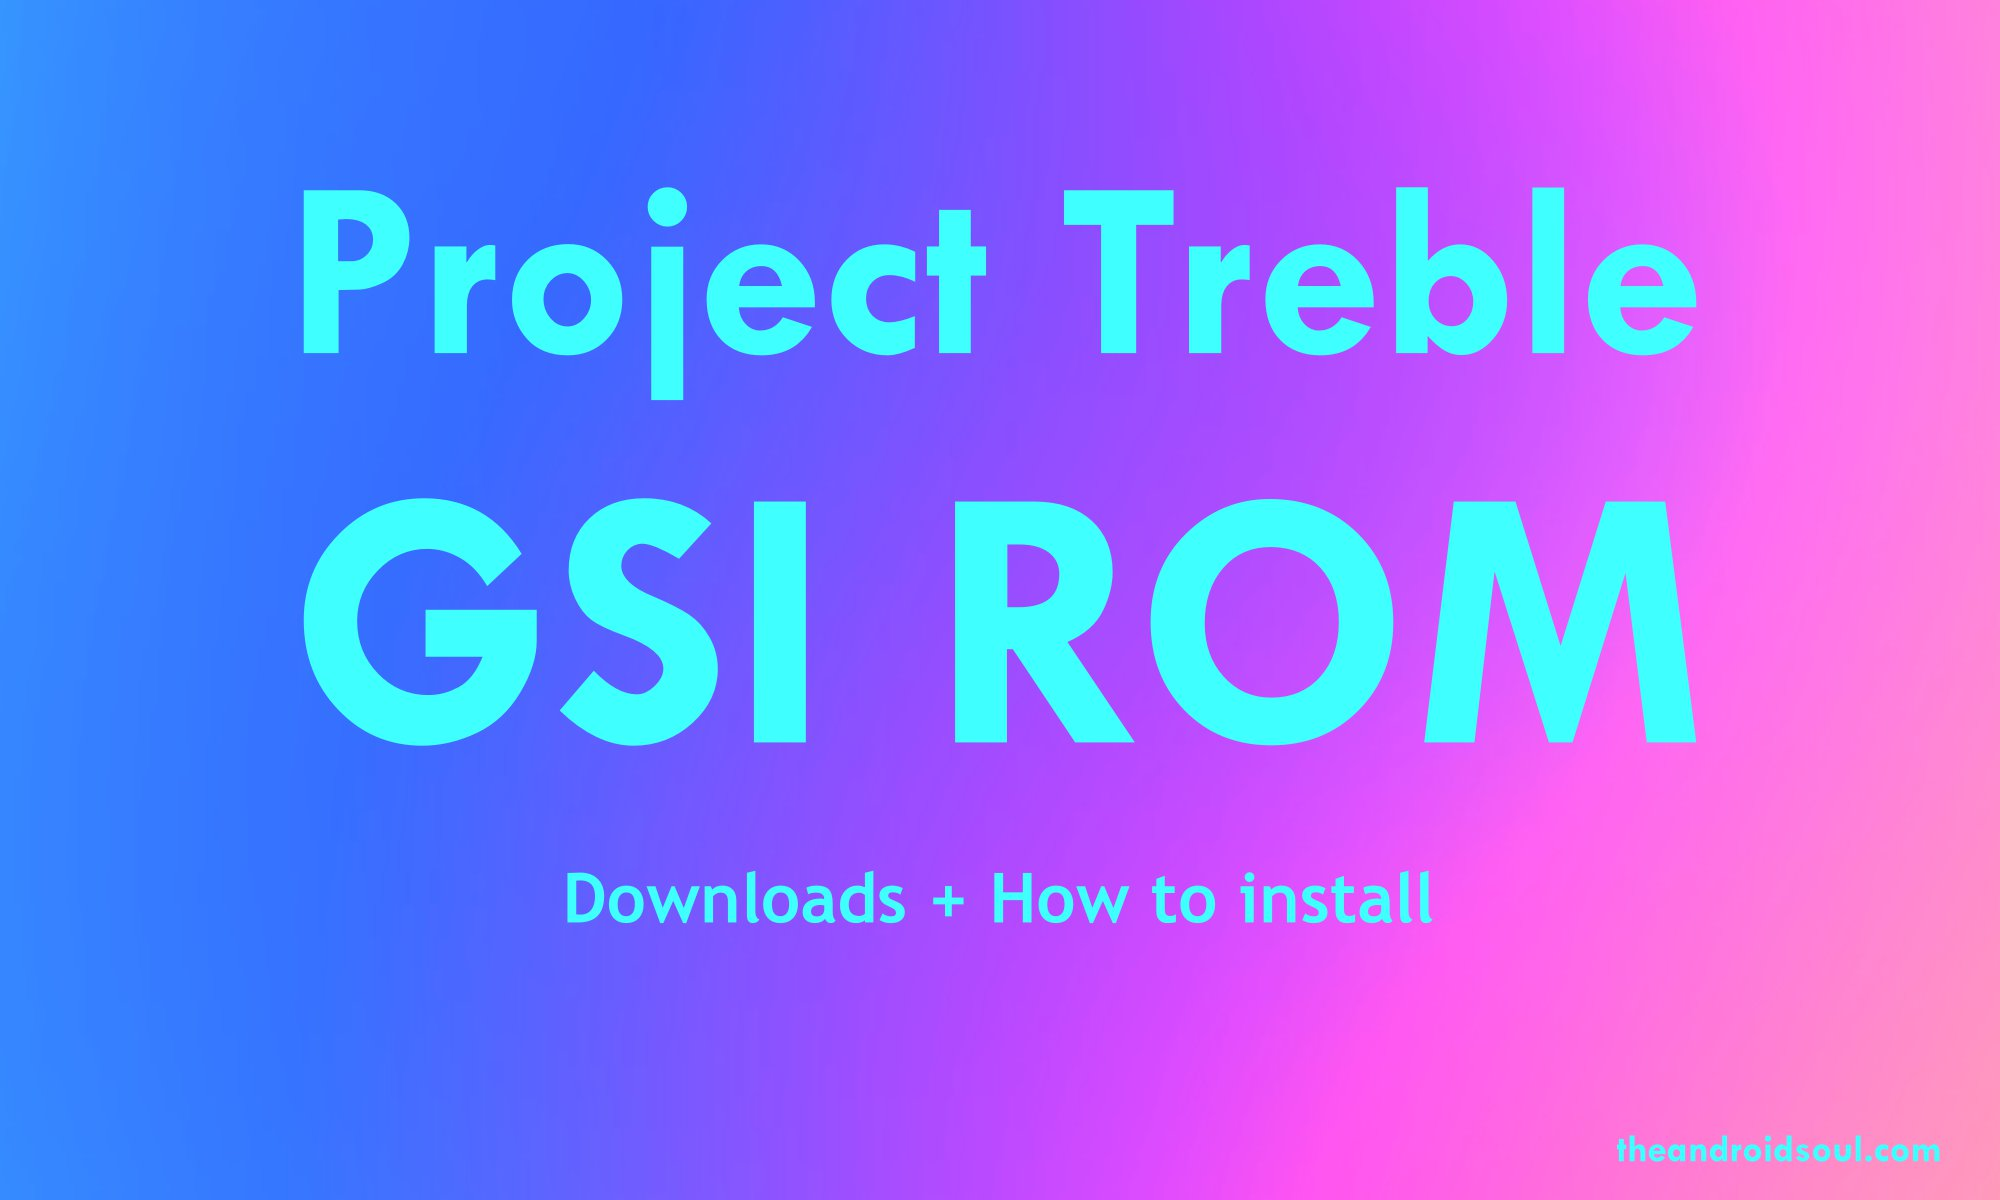 Android 9 Pie Update Available as Project Treble ROM [GSI]